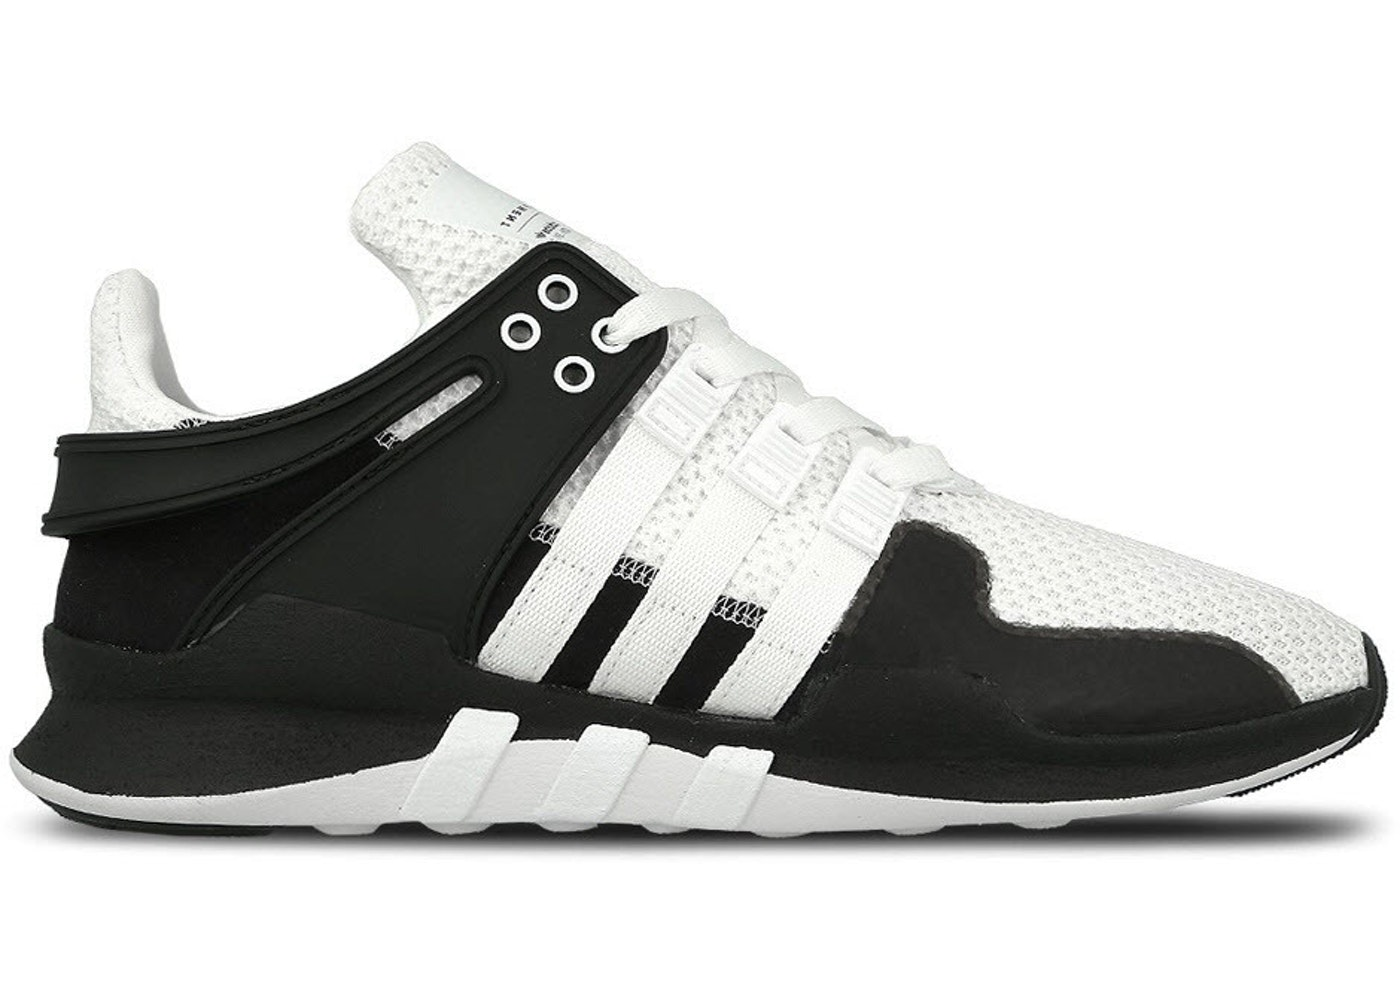 Adidas Women's EQT Racing 91/16 W (Black & Turbo) End